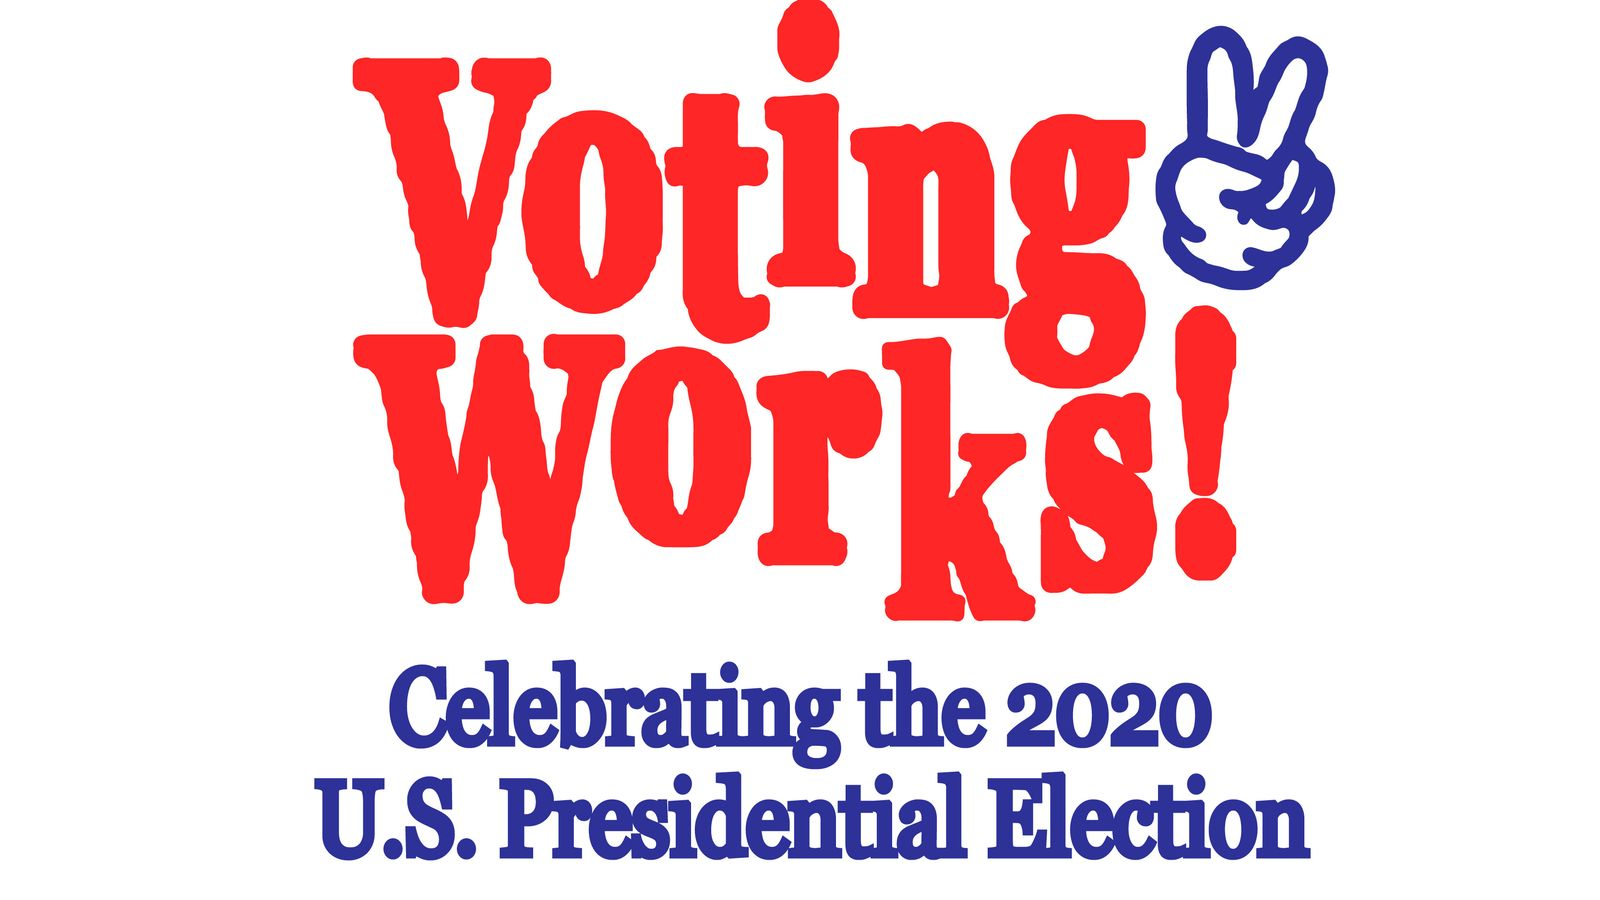 VOTING WORKS 2020 - campaign